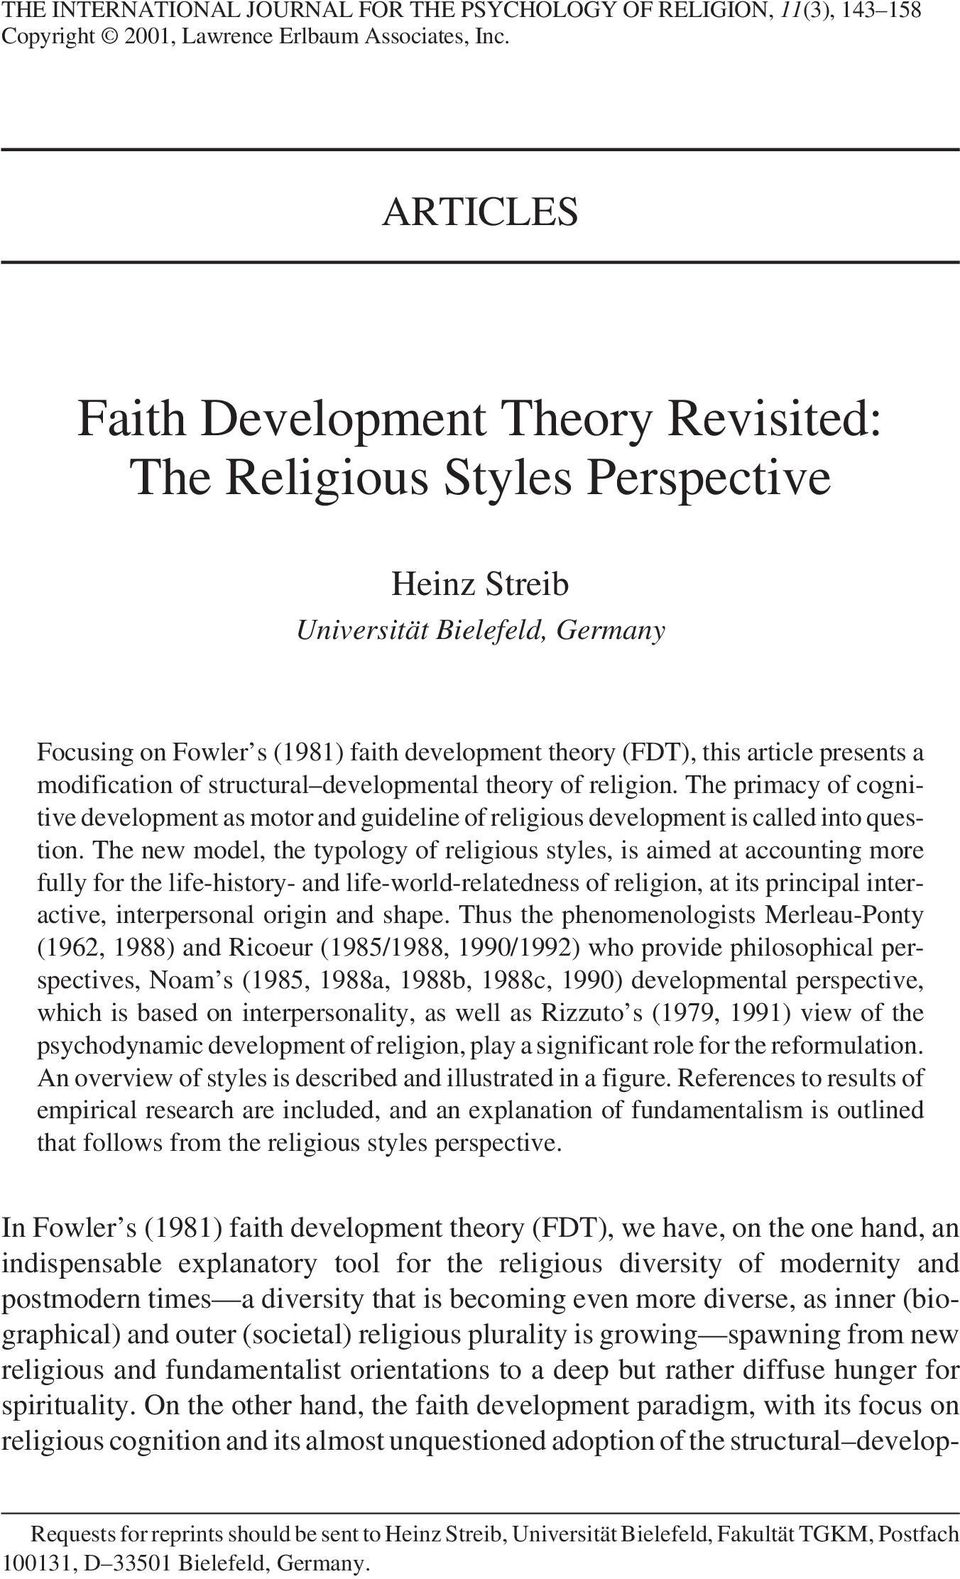 presents a modification of structural developmental theory of religion. The primacy of cognitive development as motor and guideline of religious development is called into question.